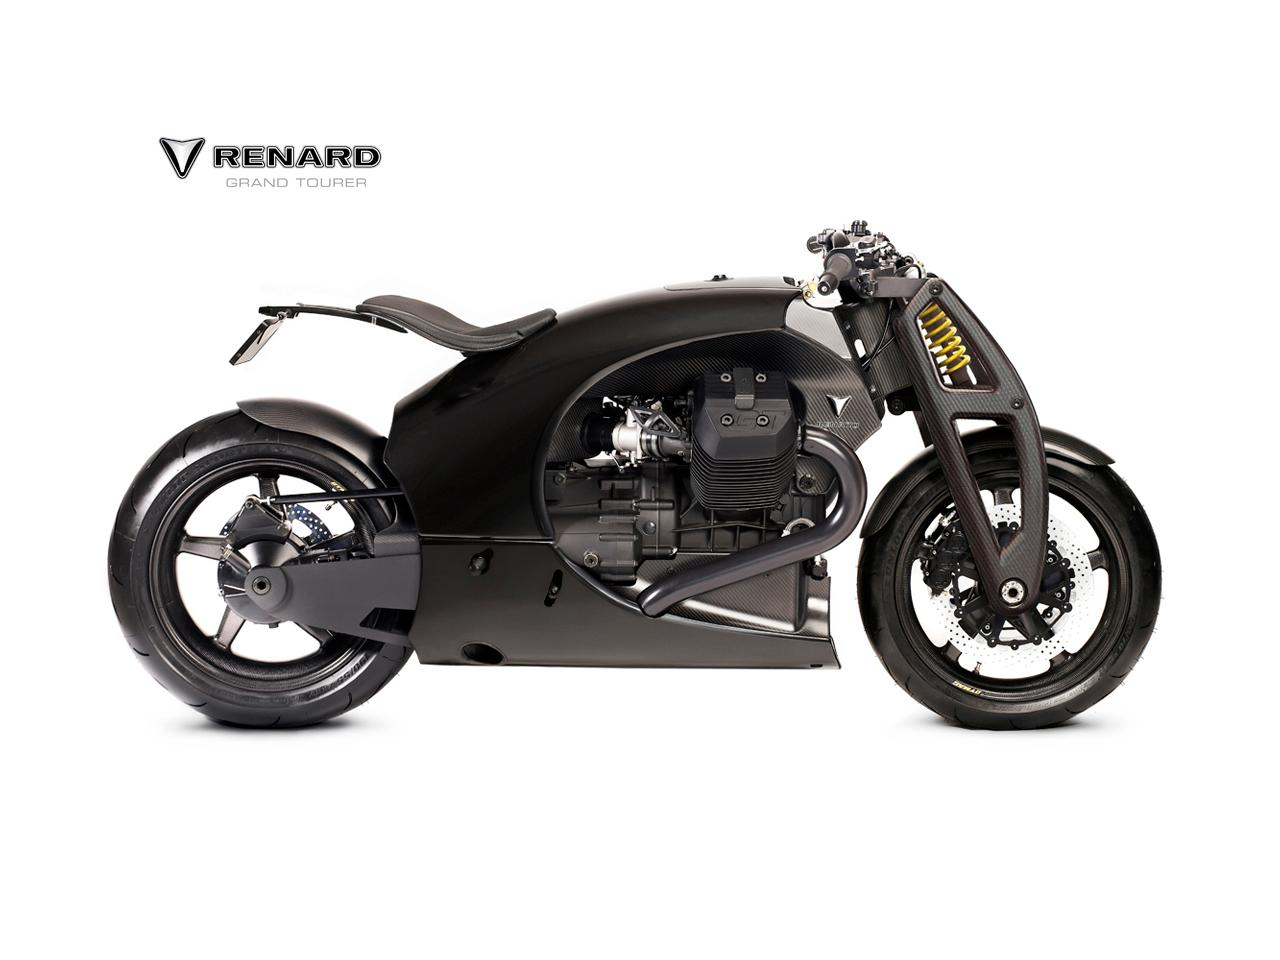 """The 90° v-twin donk is no horsepower king, but it's usable midrange and light weight will no doubt contribute to what Renard's press material dubs a """"surgeon's blade on two wheels."""""""